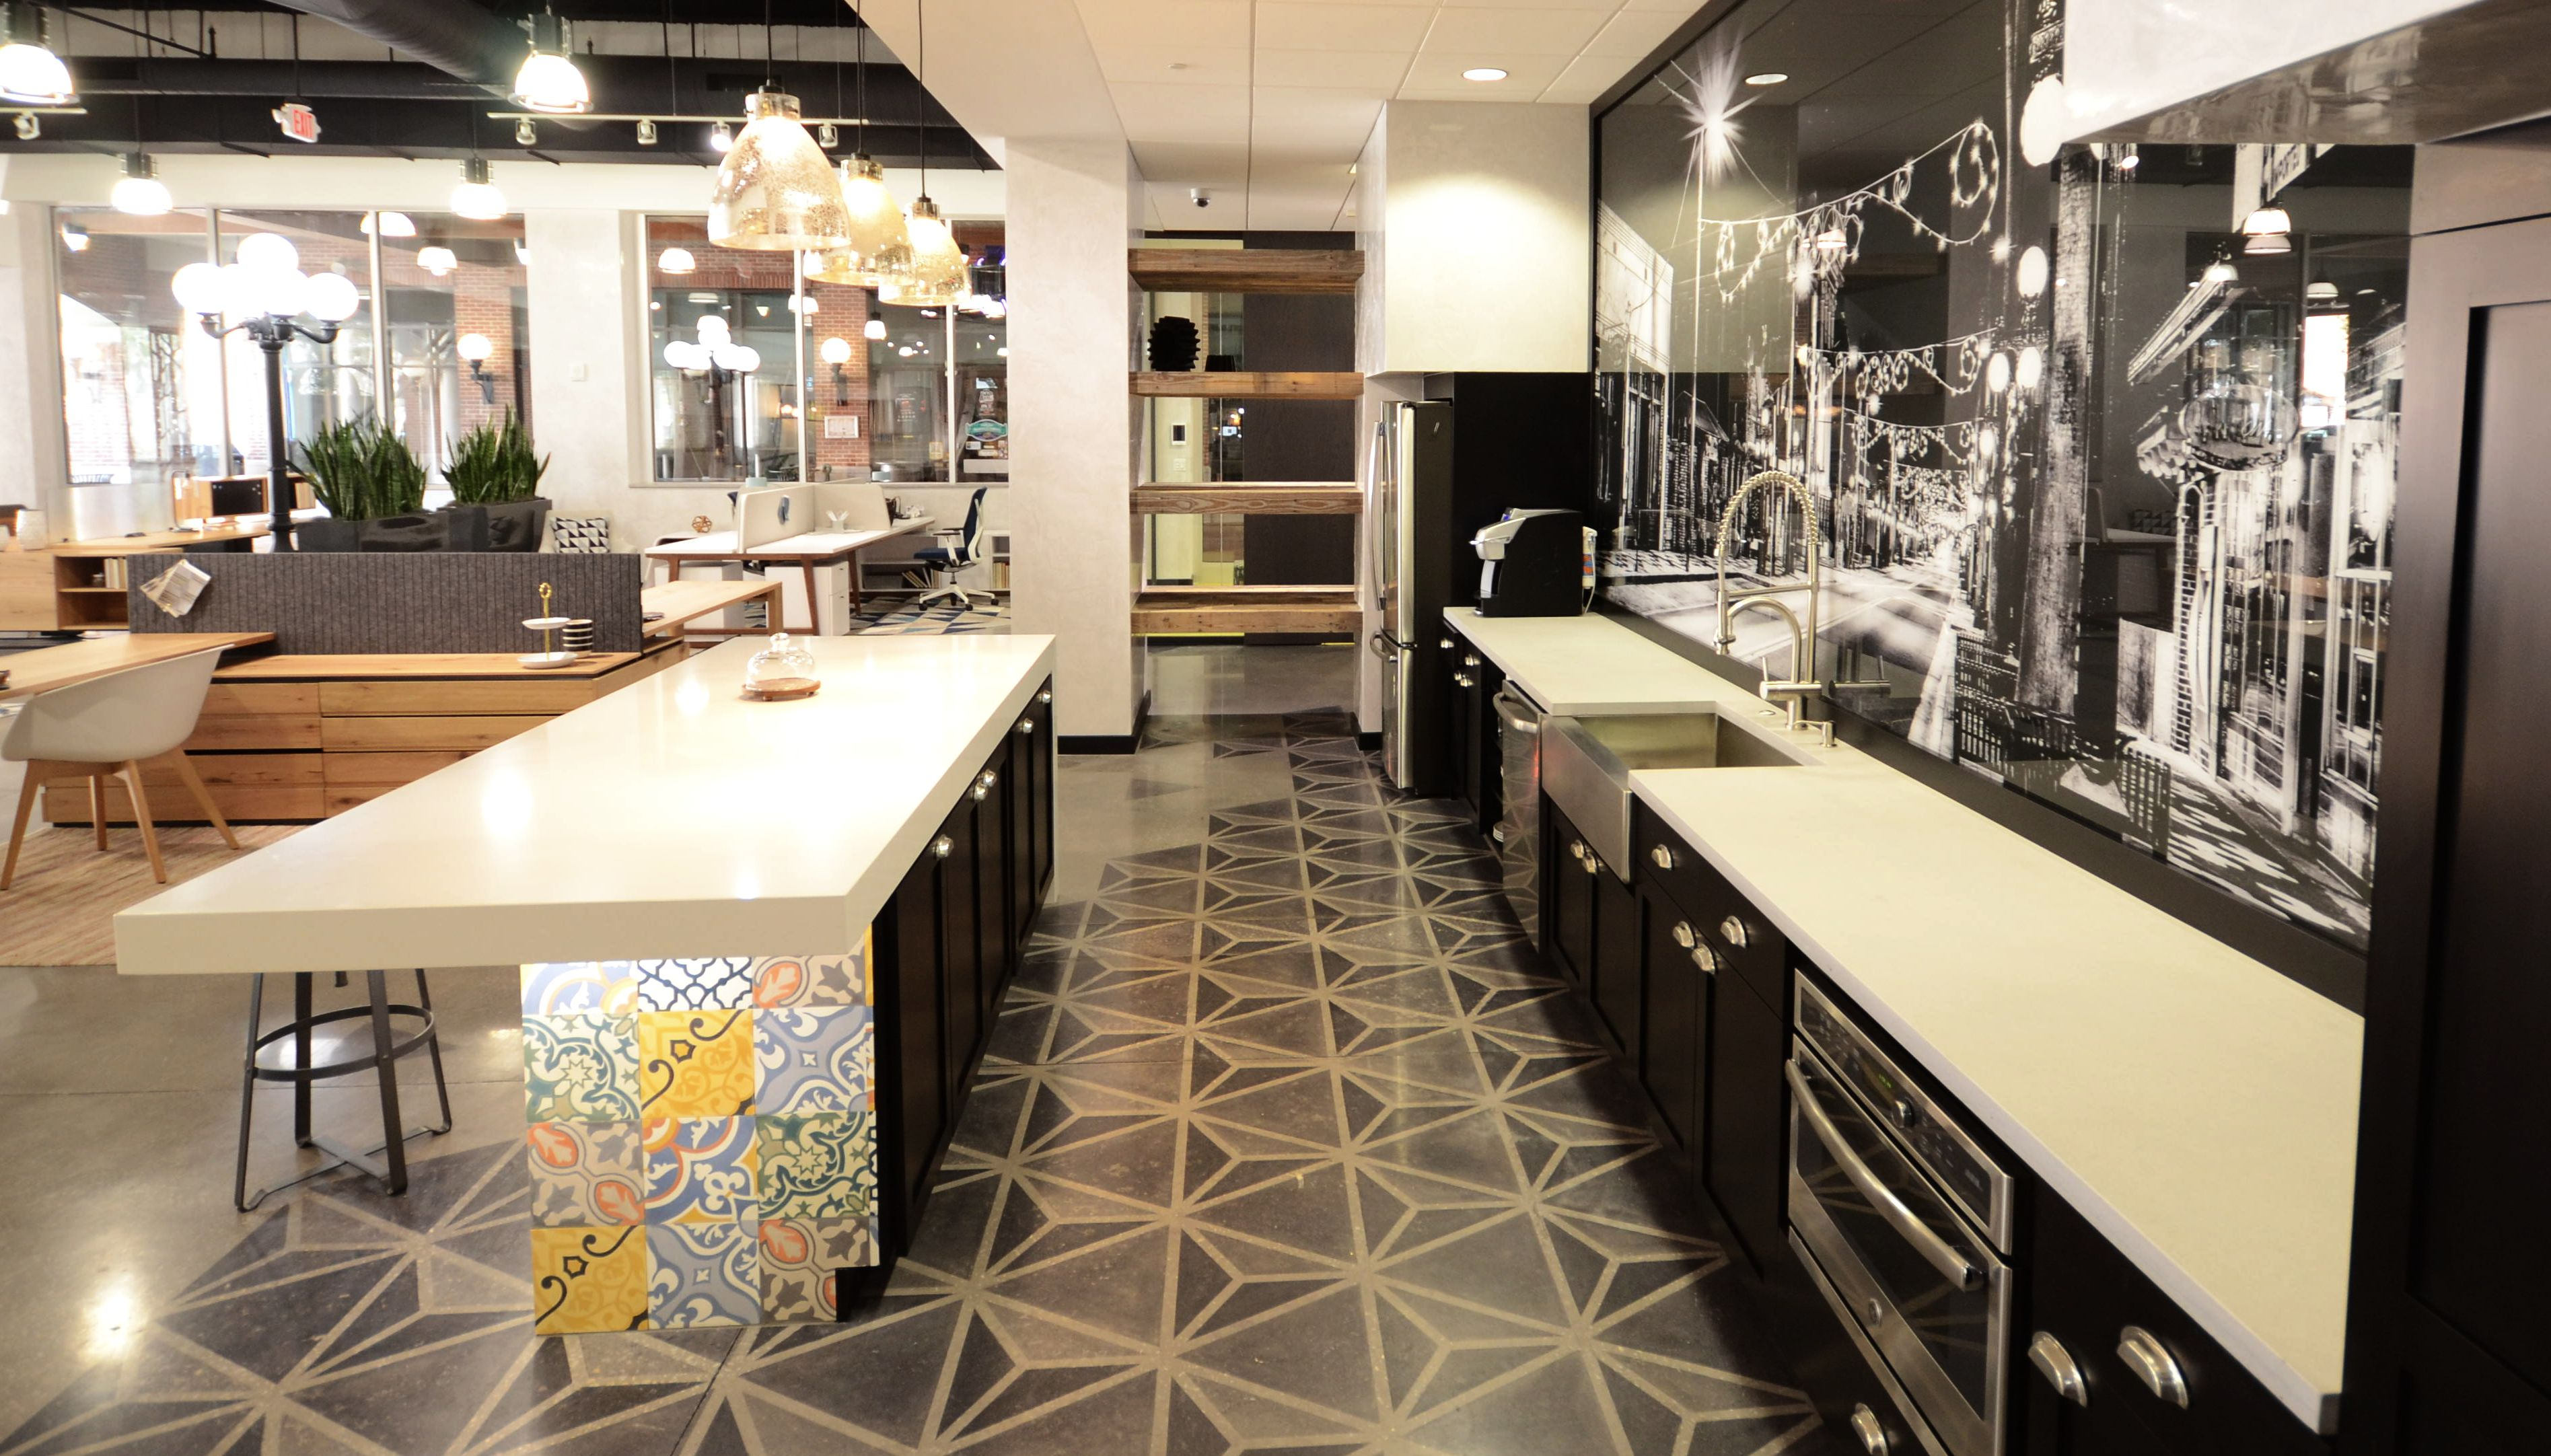 Concrete Countertops are the Latest in Kitchen Design